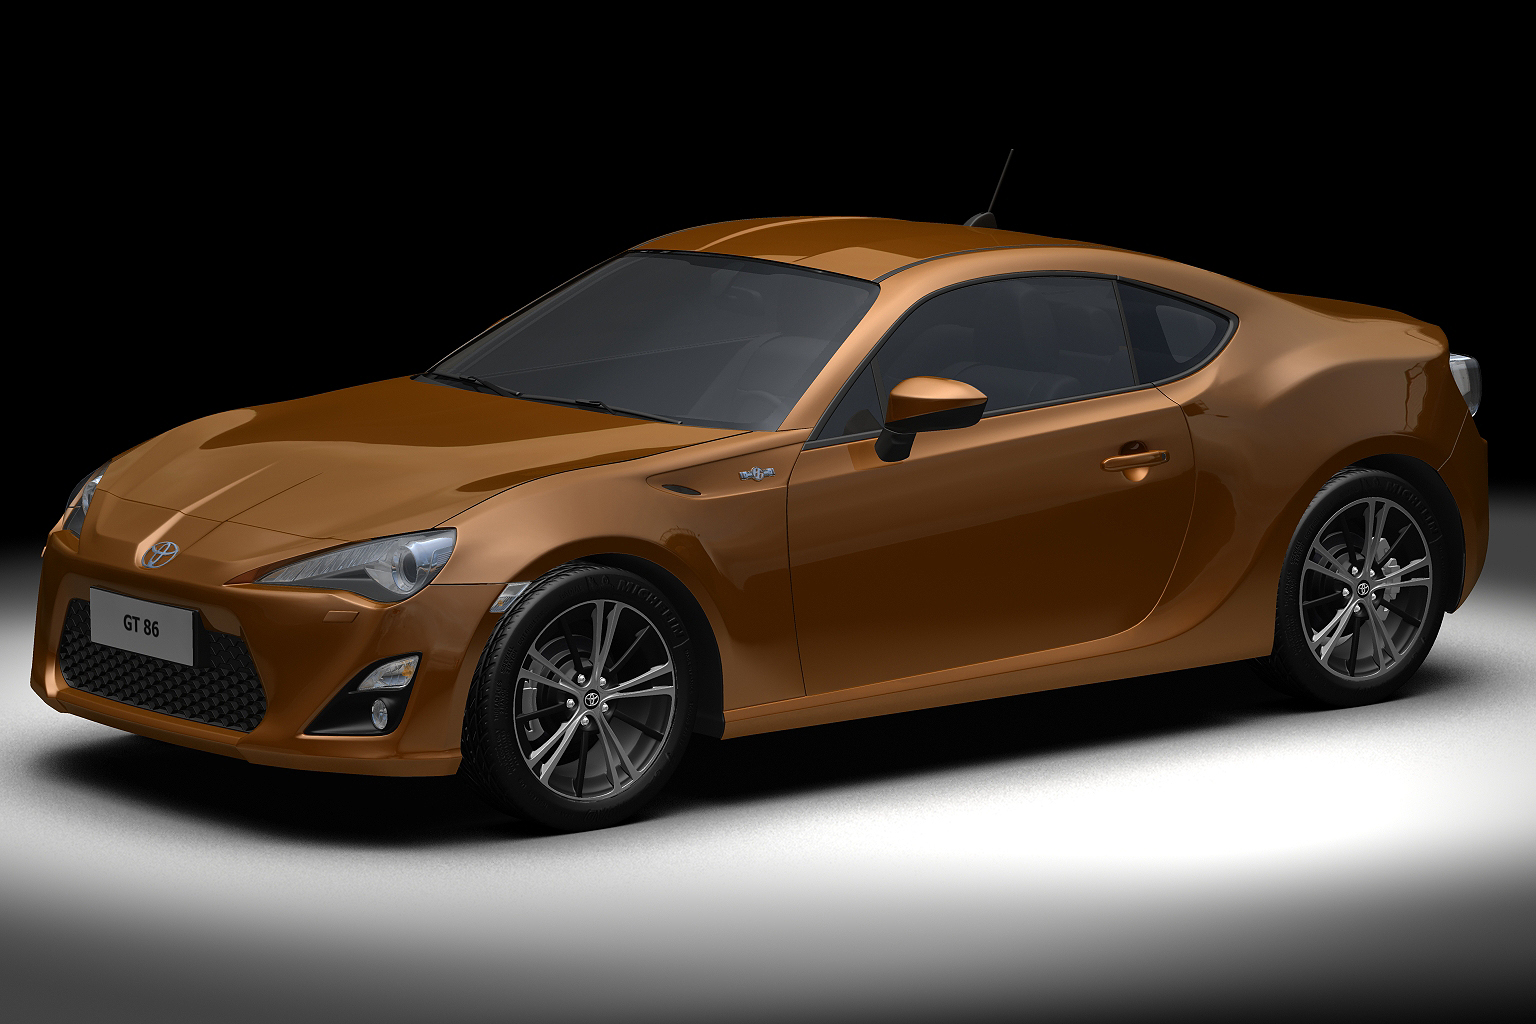 2013 model GT86 3d model 3ds max fbx c4d lwo hrc xsi obj 136149